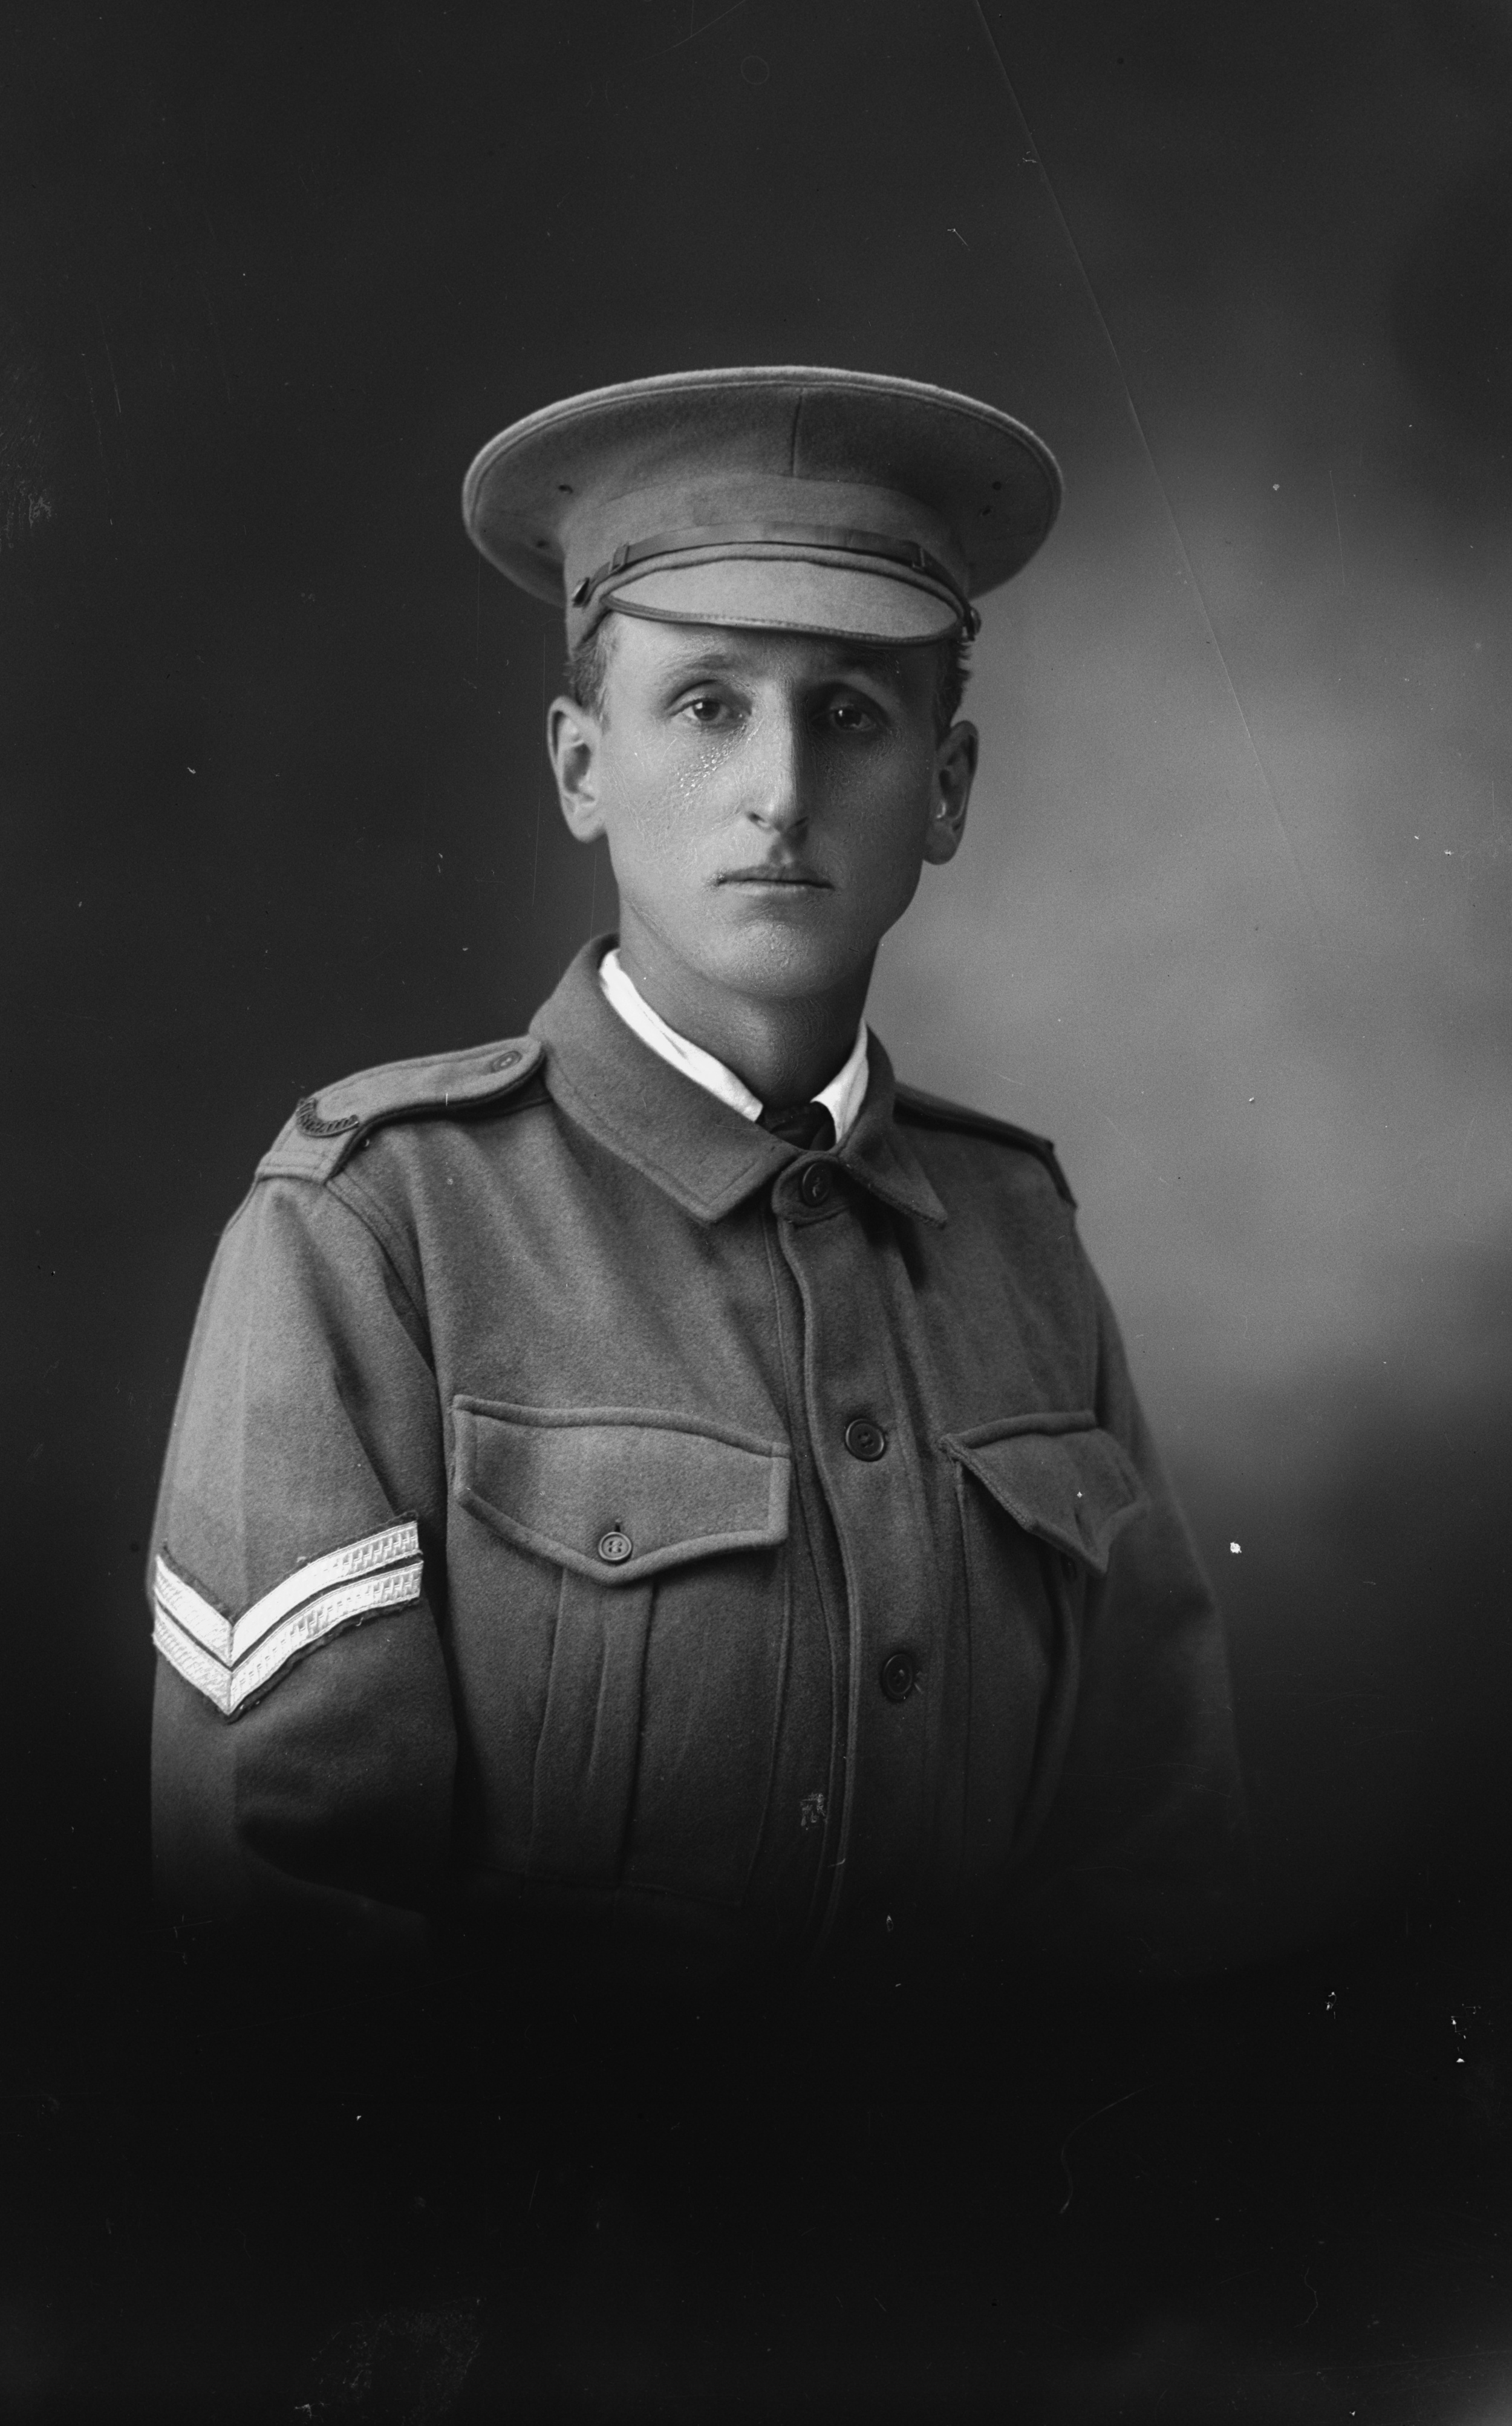 Photographed at the Dease Studio, 117 Barrack Street Perth WA Image courtesy of the State Library of Western Australia: 108106PD